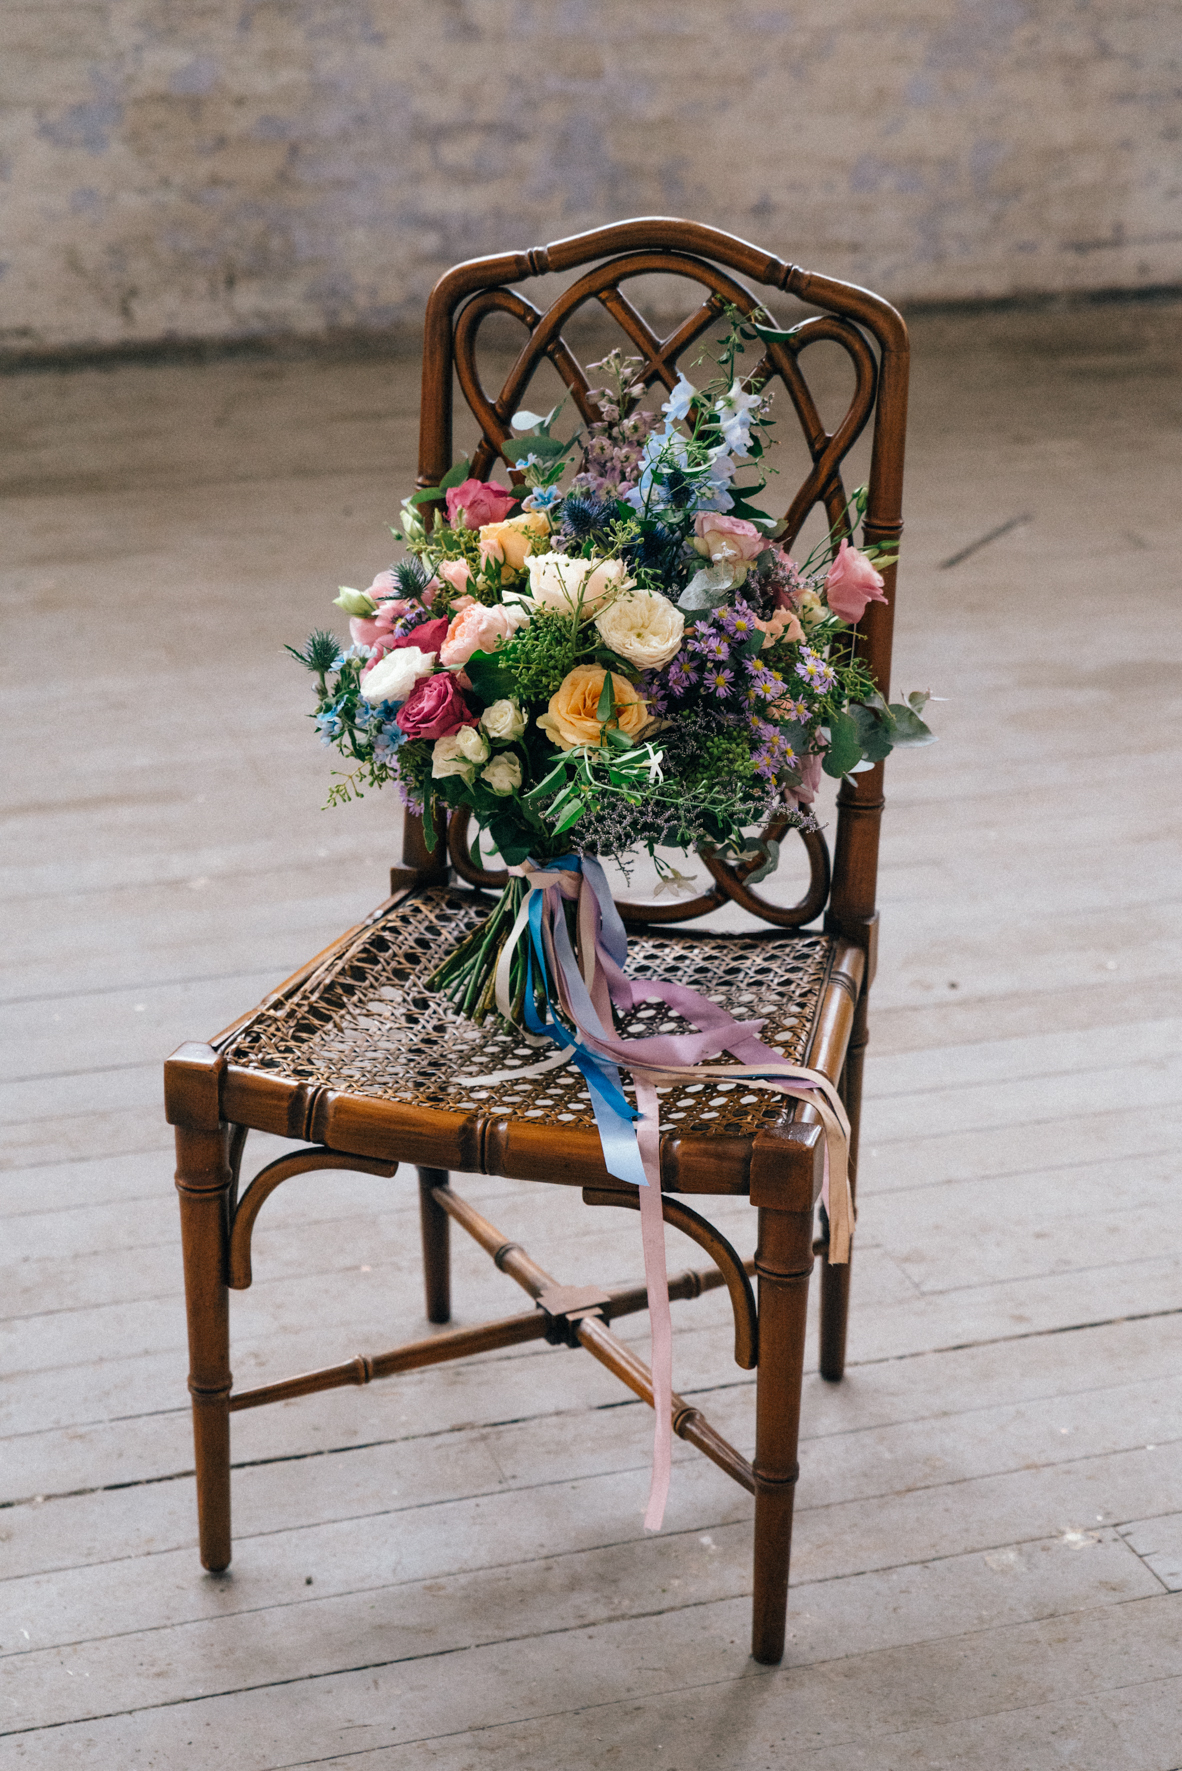 Stunning industrial wedding flower set up in Melbourne, Australia